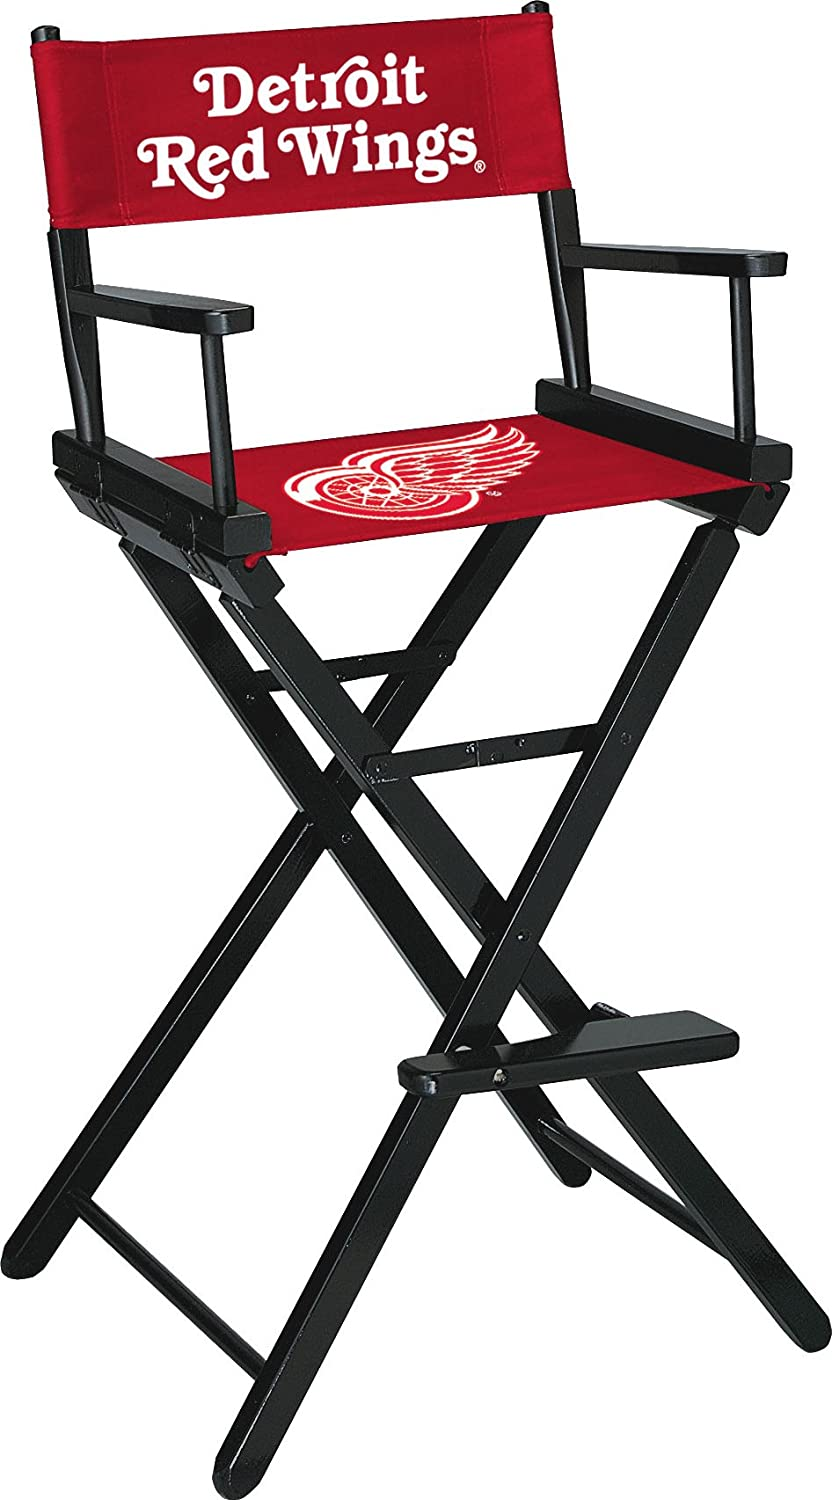 89a3a3db5f4 Amazon.com  Imperial Officially Licensed NHL Merchandise  Directors Chair  (Tall